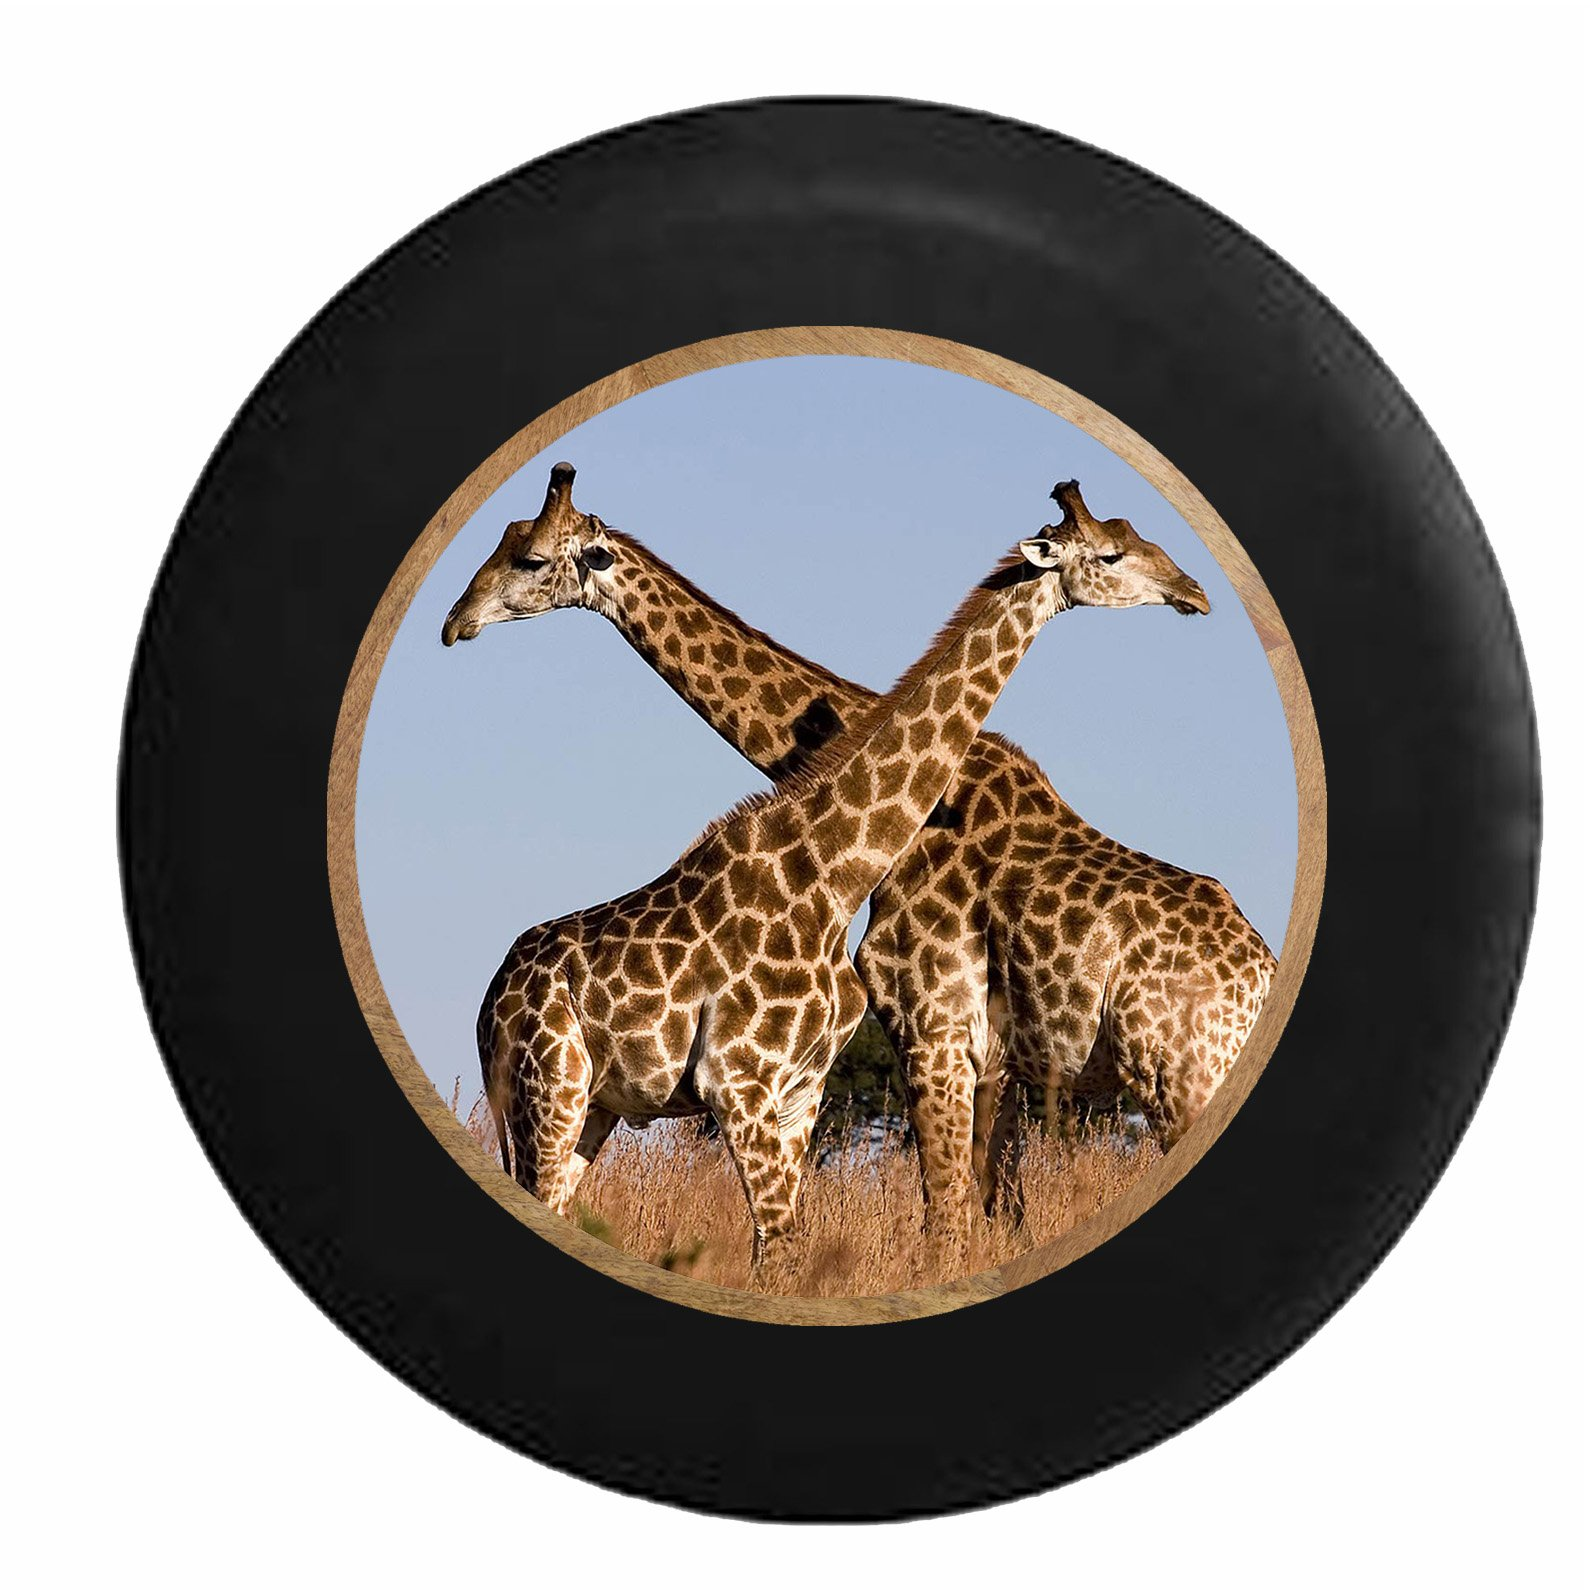 Pike Outdoors Full Color Giraffe Couple in The African Sahara Spare Tire Cover fits SUV Camper RV Accessories Black 35 in by Pike Outdoors